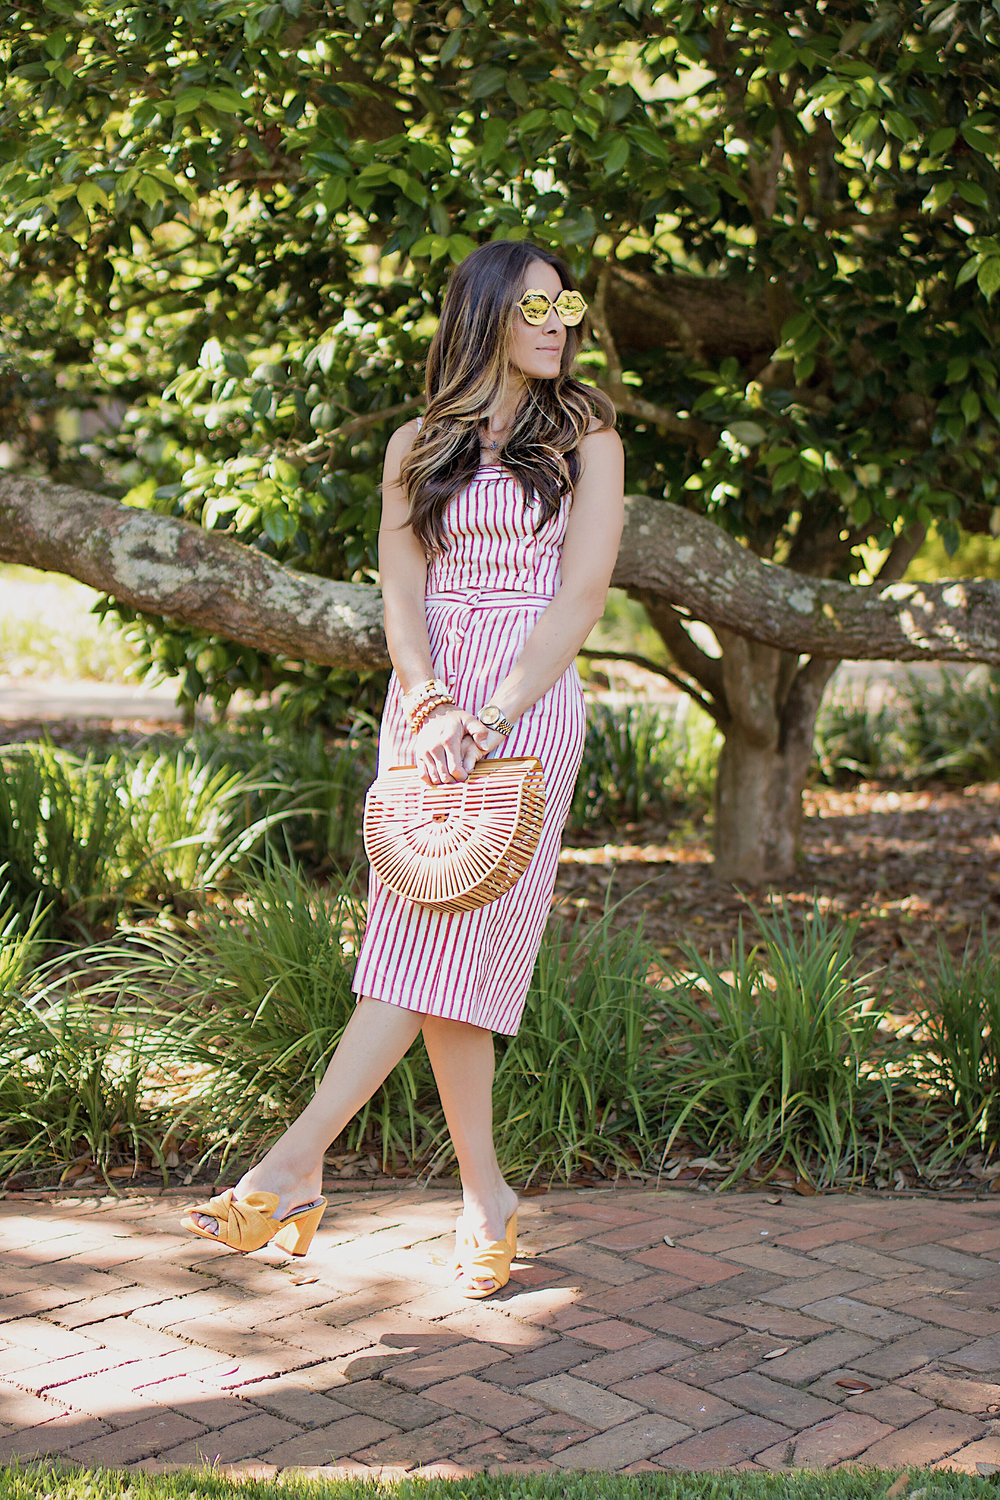 SKIRT -  FOREVER21  | TOP -  FOREVER21  | SHOES - SAM EDELMAN  HERE  AND  HERE  | BAG -  HERE  | SUNGLASSES -  TARGET  | WATCH - ROLEX -  HERE  AND SIMILAR  HERE  | BRACELET STACK -  SPROUTS DESIGNS  | LIPSTICK -  NARS